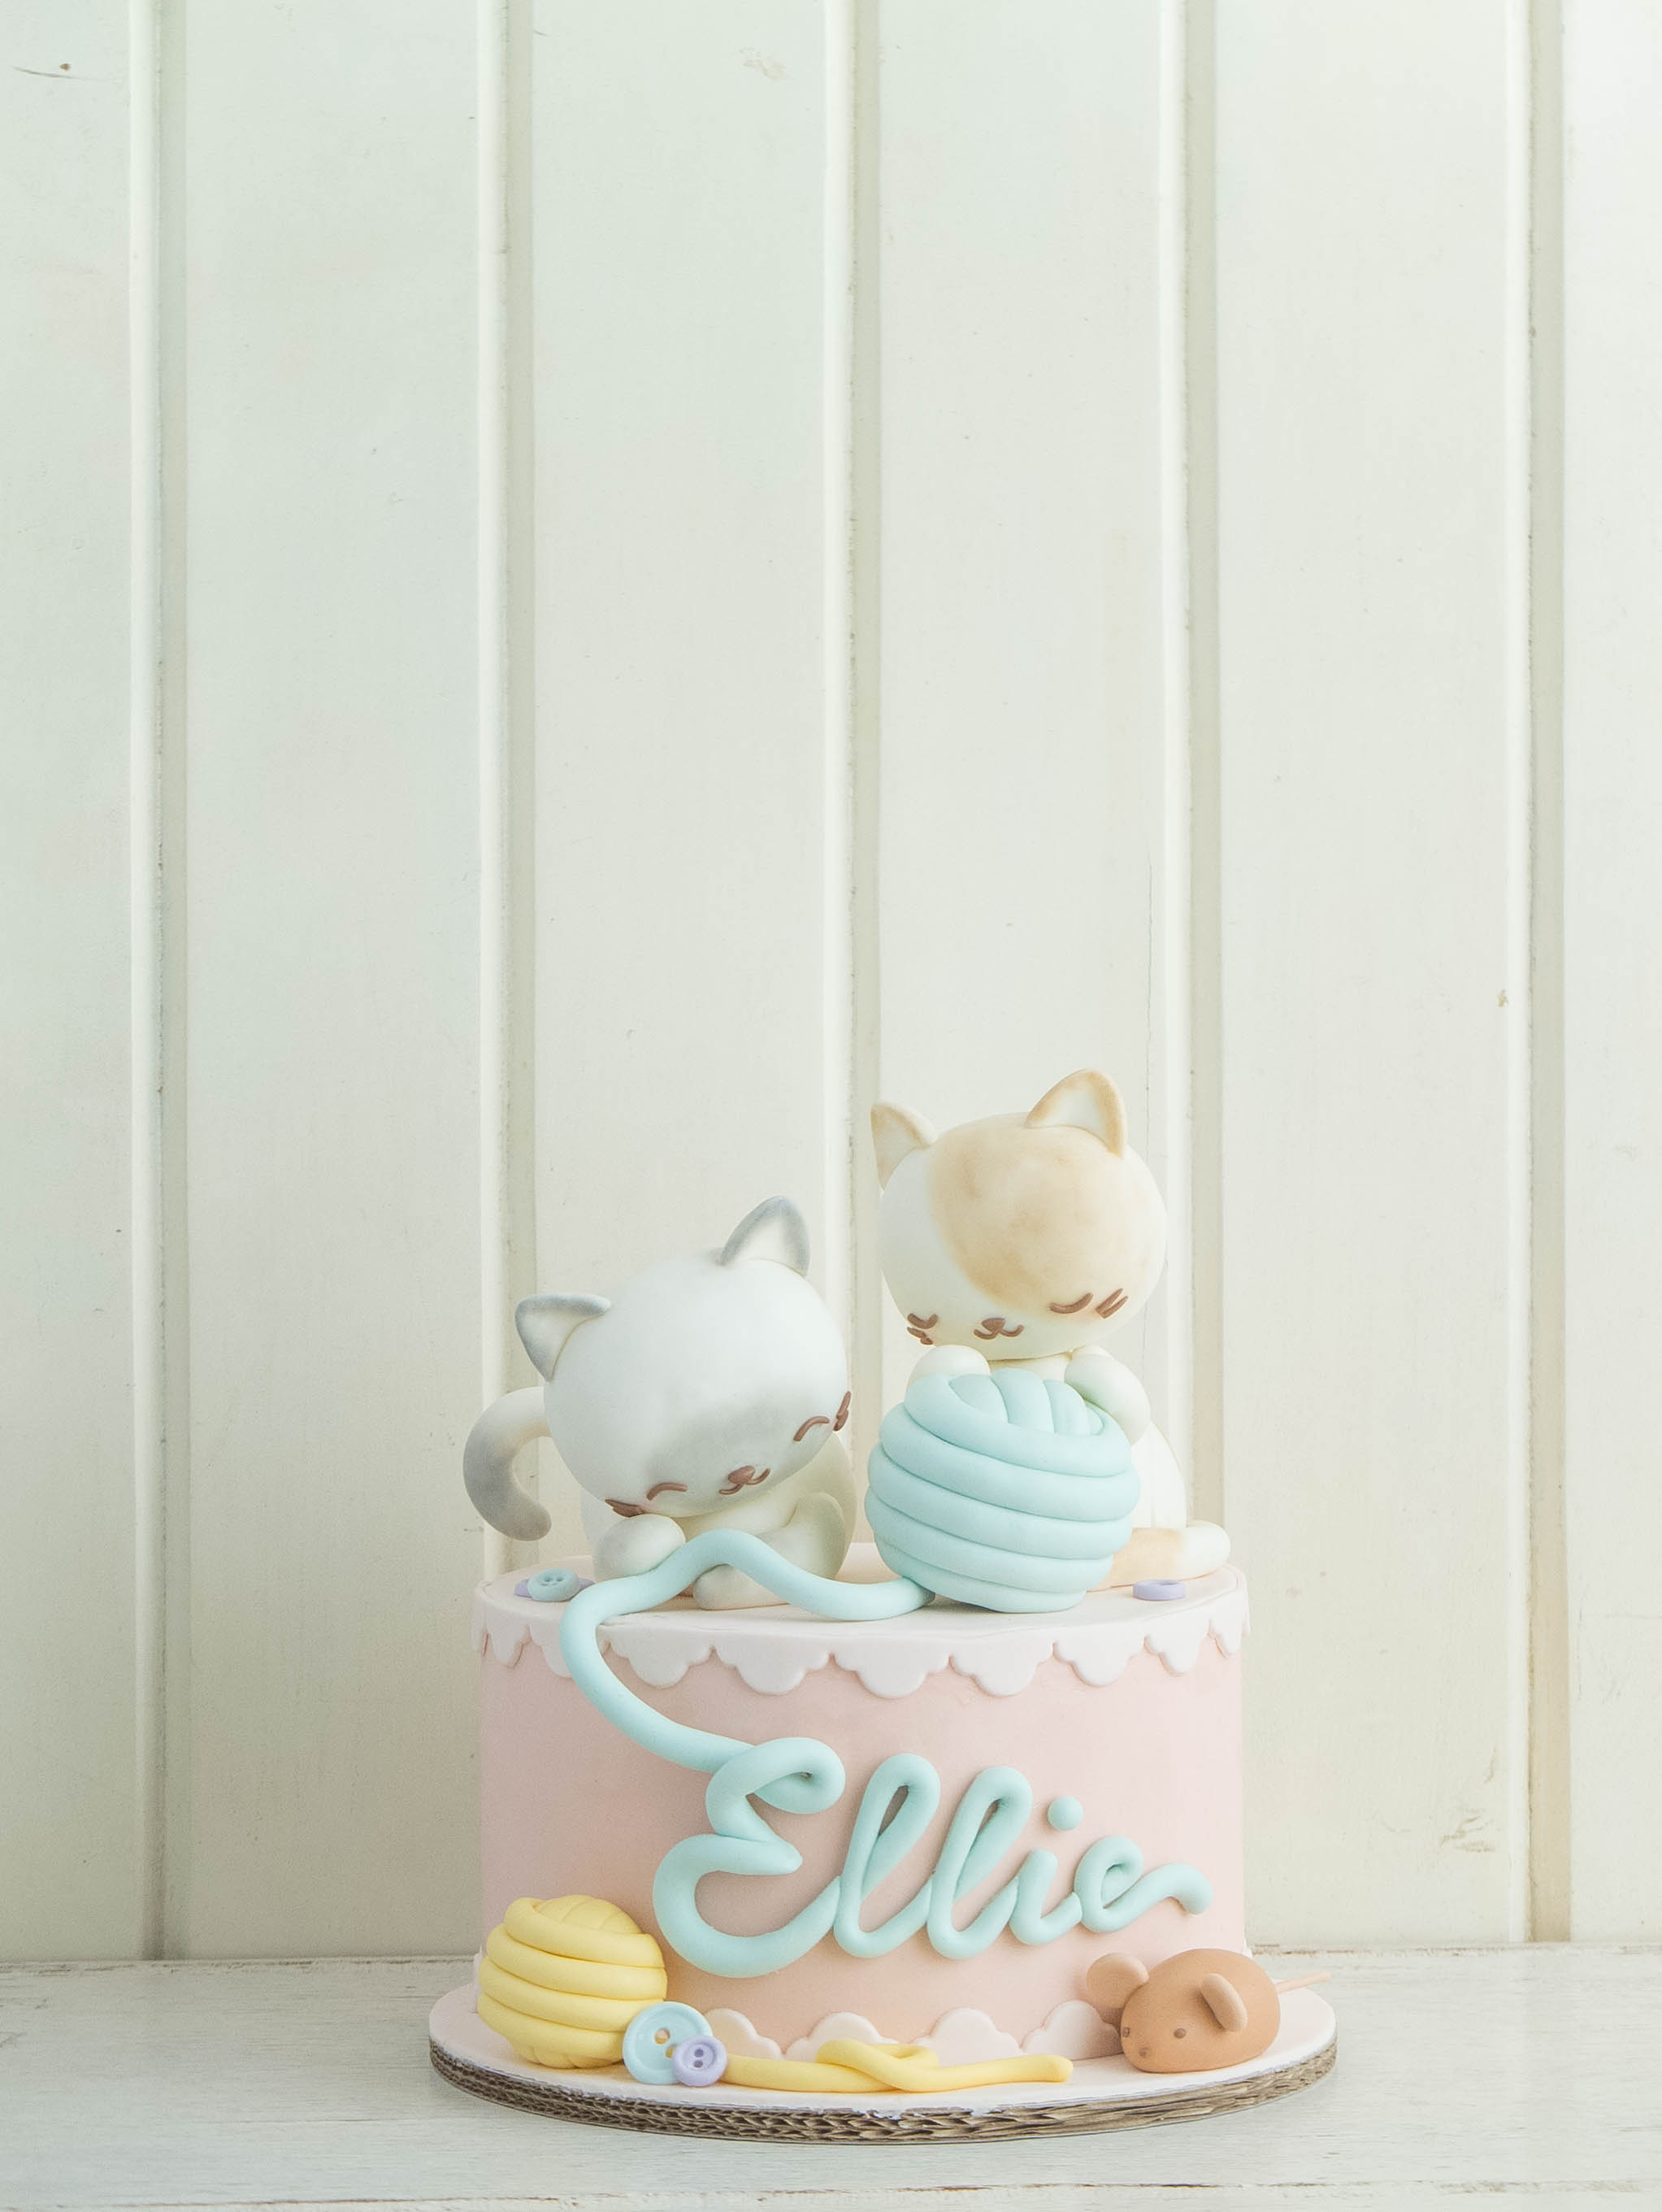 CTCakes - Playful Kittens 8in